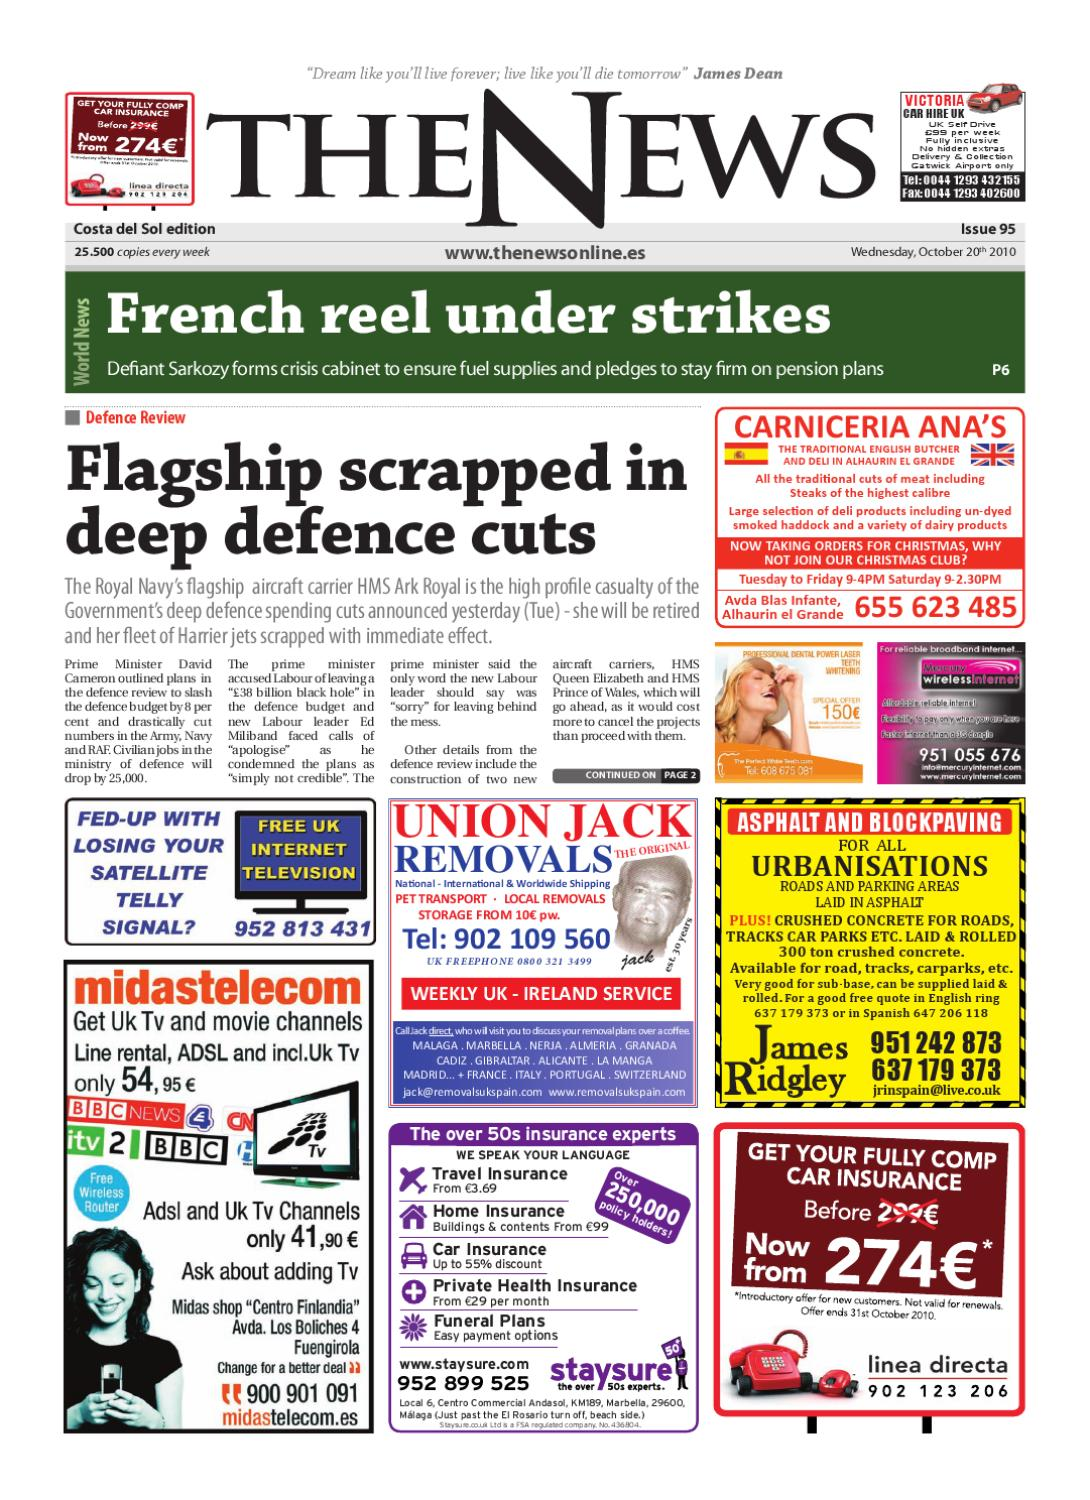 The News Newspaper Issue 095 Date 20 10 10 By The News Newspaper Issuu